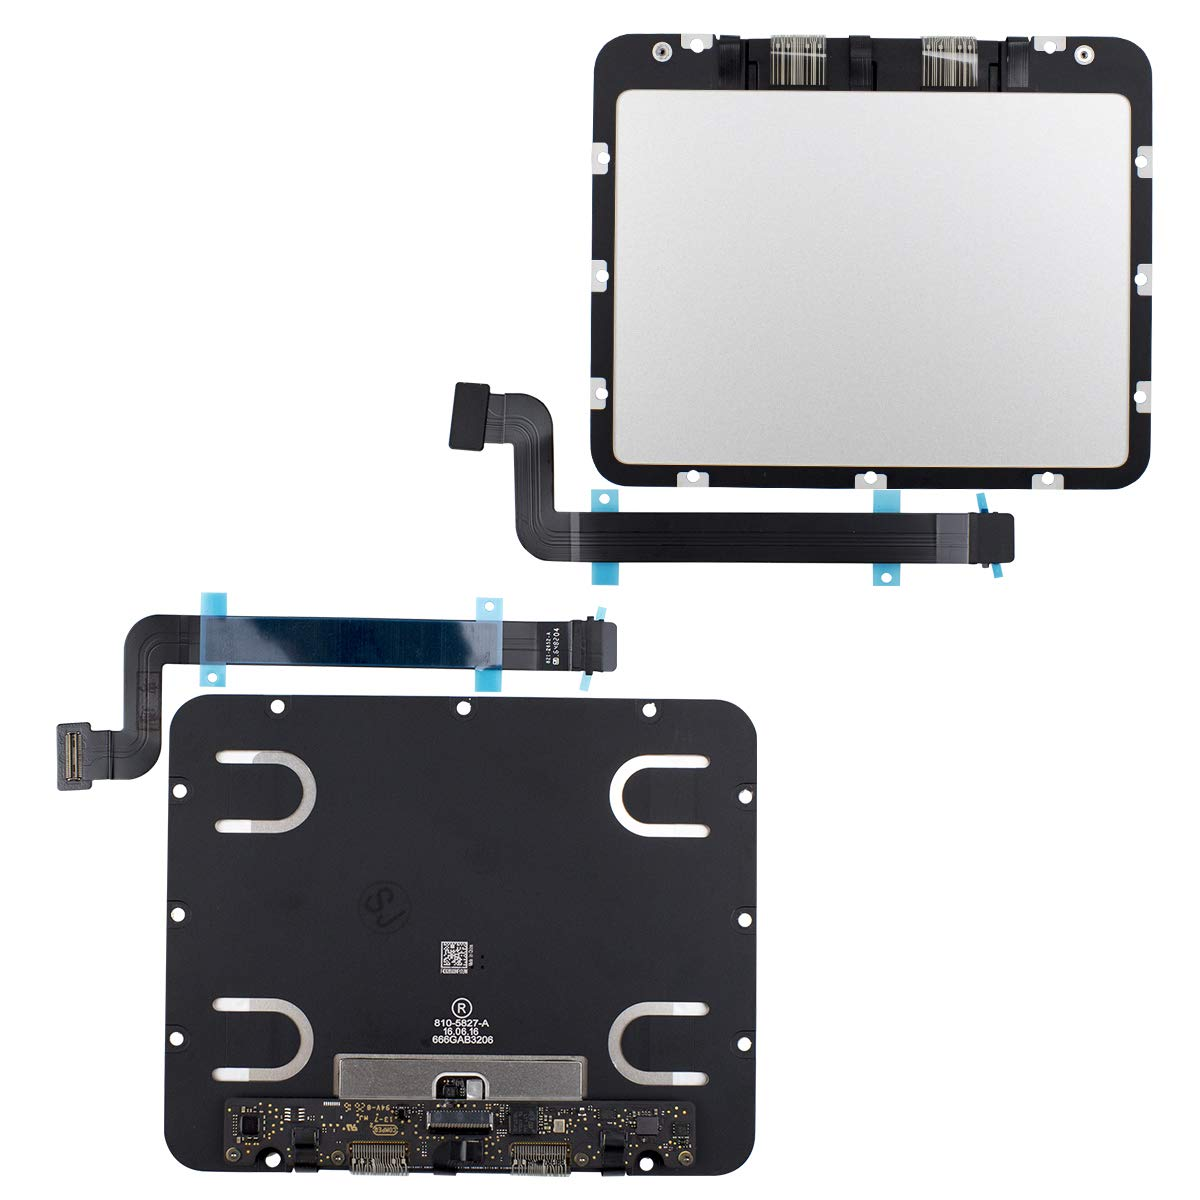 Totola New (923-00541) Trackpad with Flex Cable for Apple MacBook Pro Retina 15'' A1398 Touchpad Parts (Mid 2015 Version) by Totola